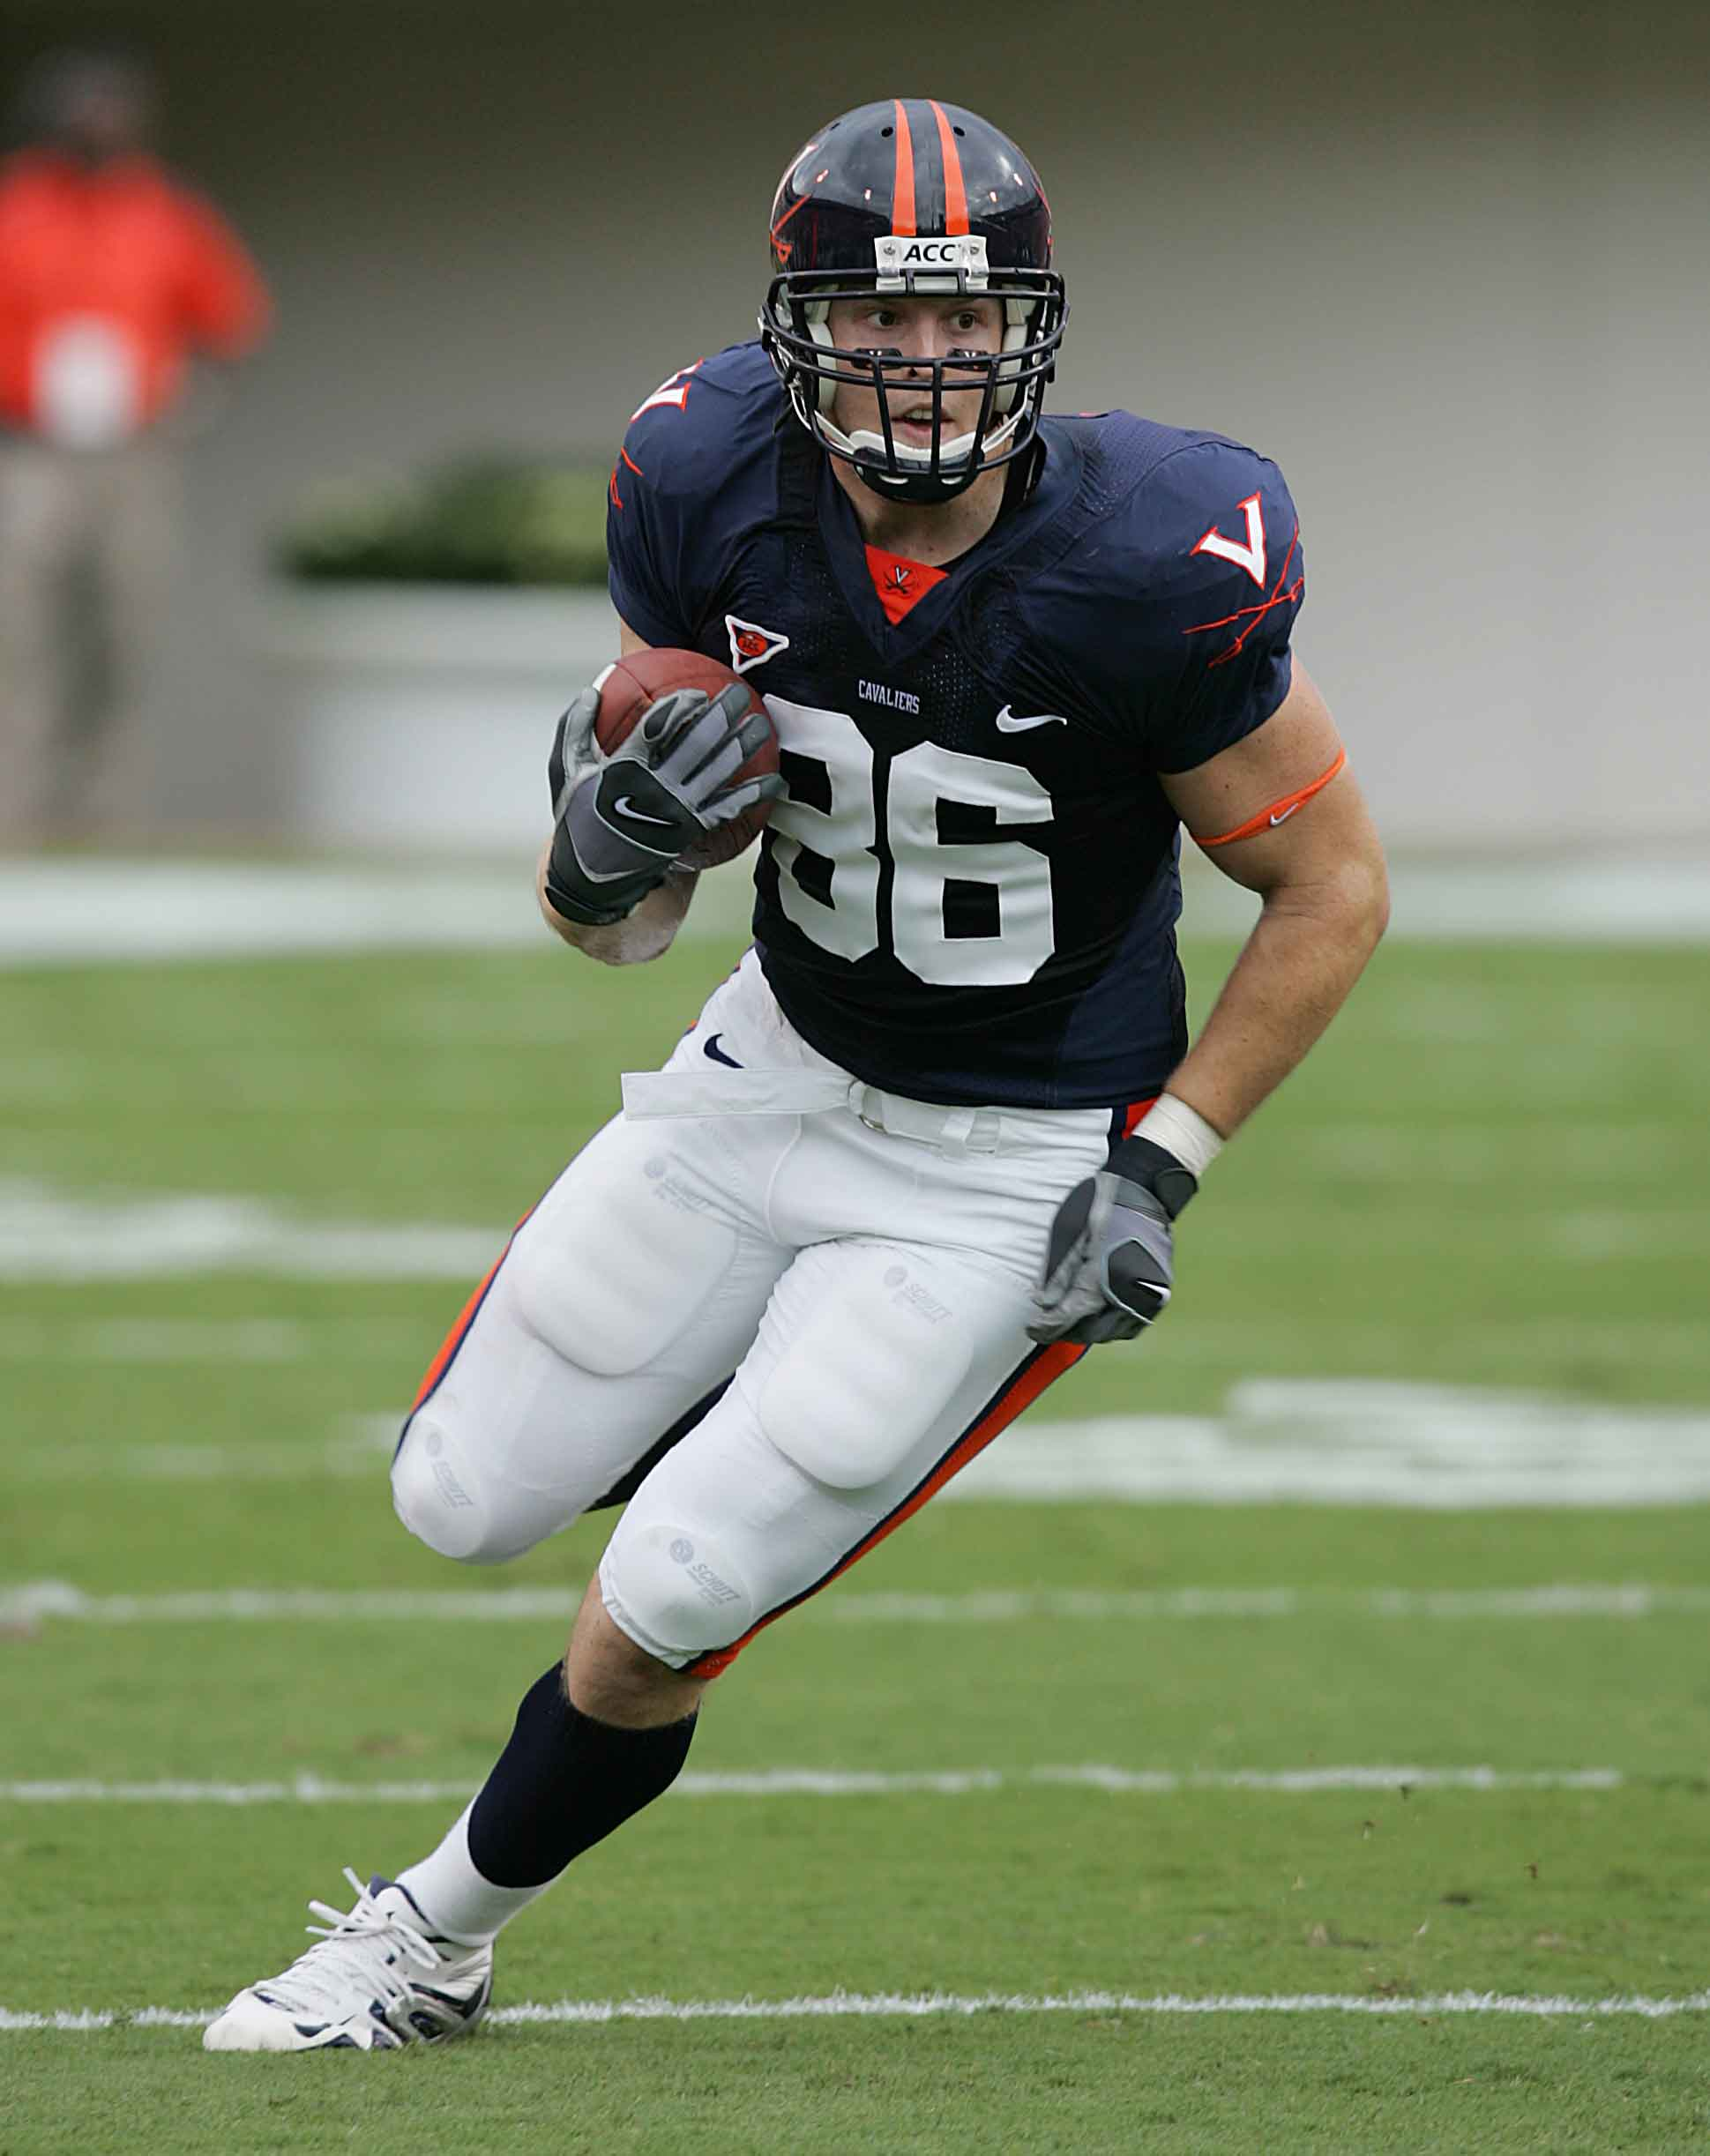 Tom Santi starred while at UVA, earning a spot with the NFL's Indianapolis Colts.